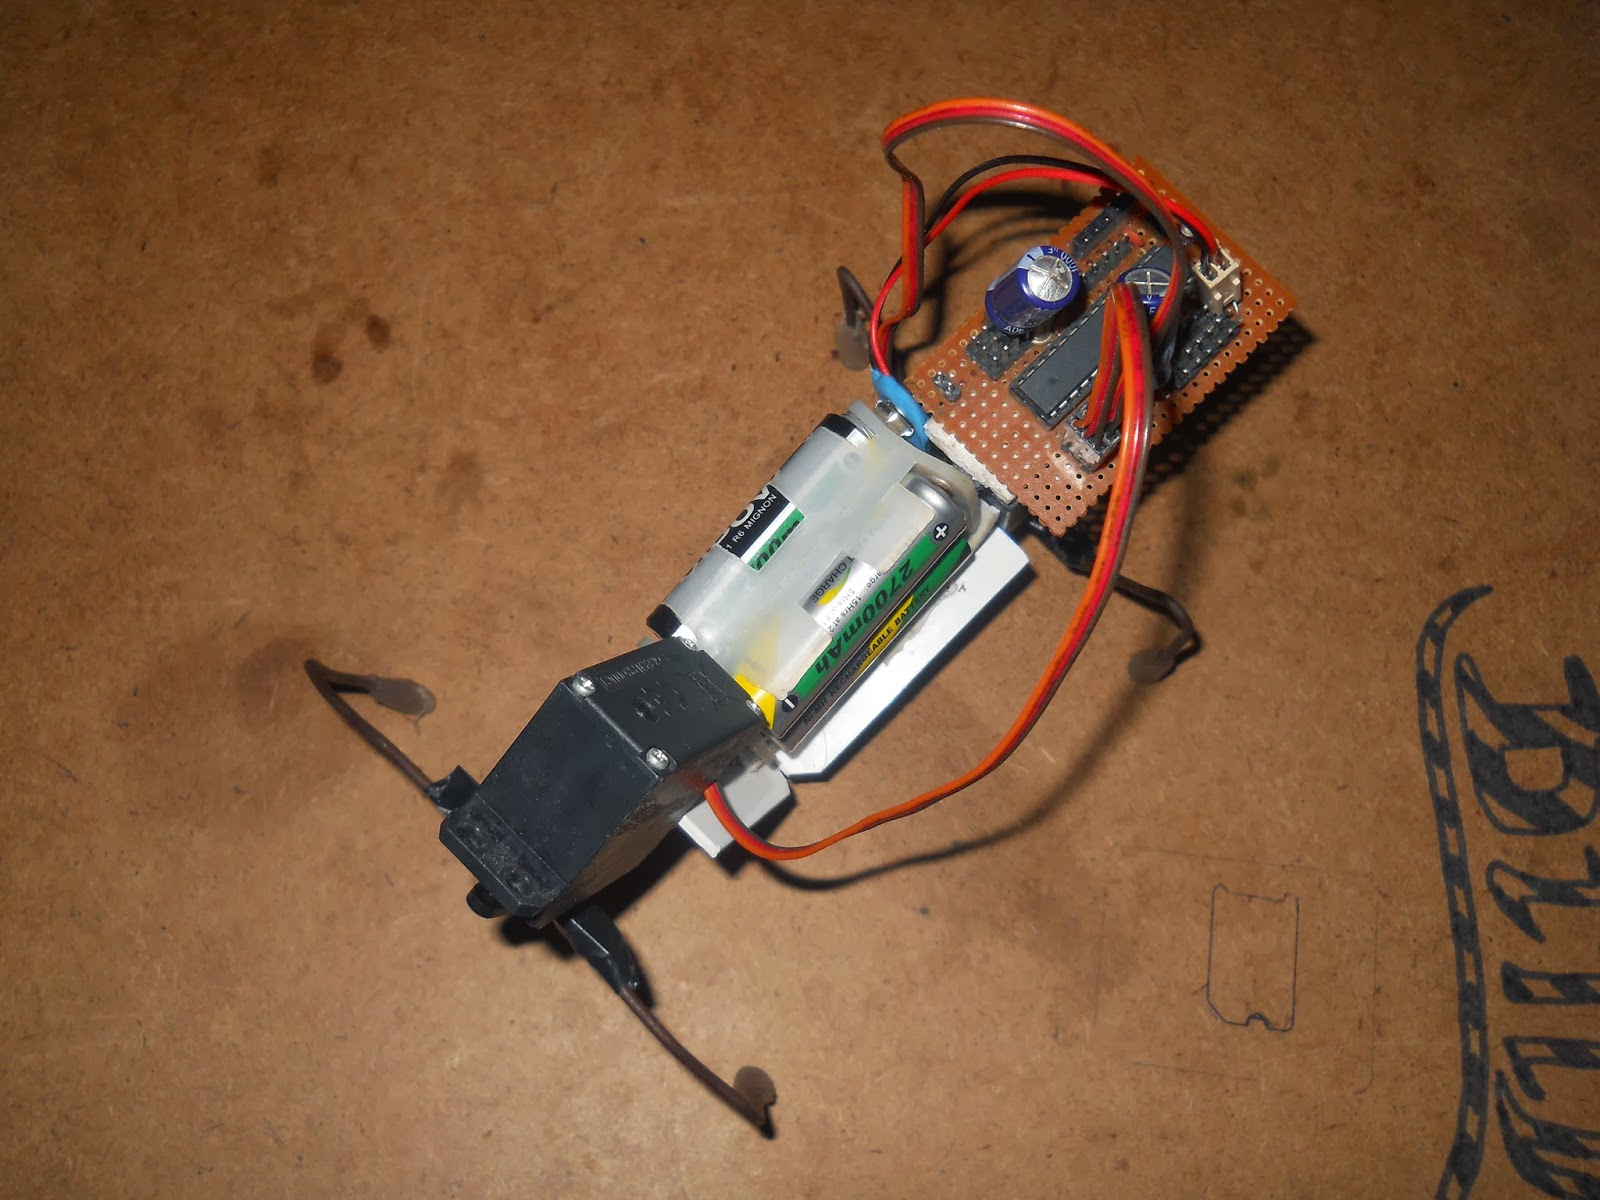 Robo zone arduino based quadruped robot using servos